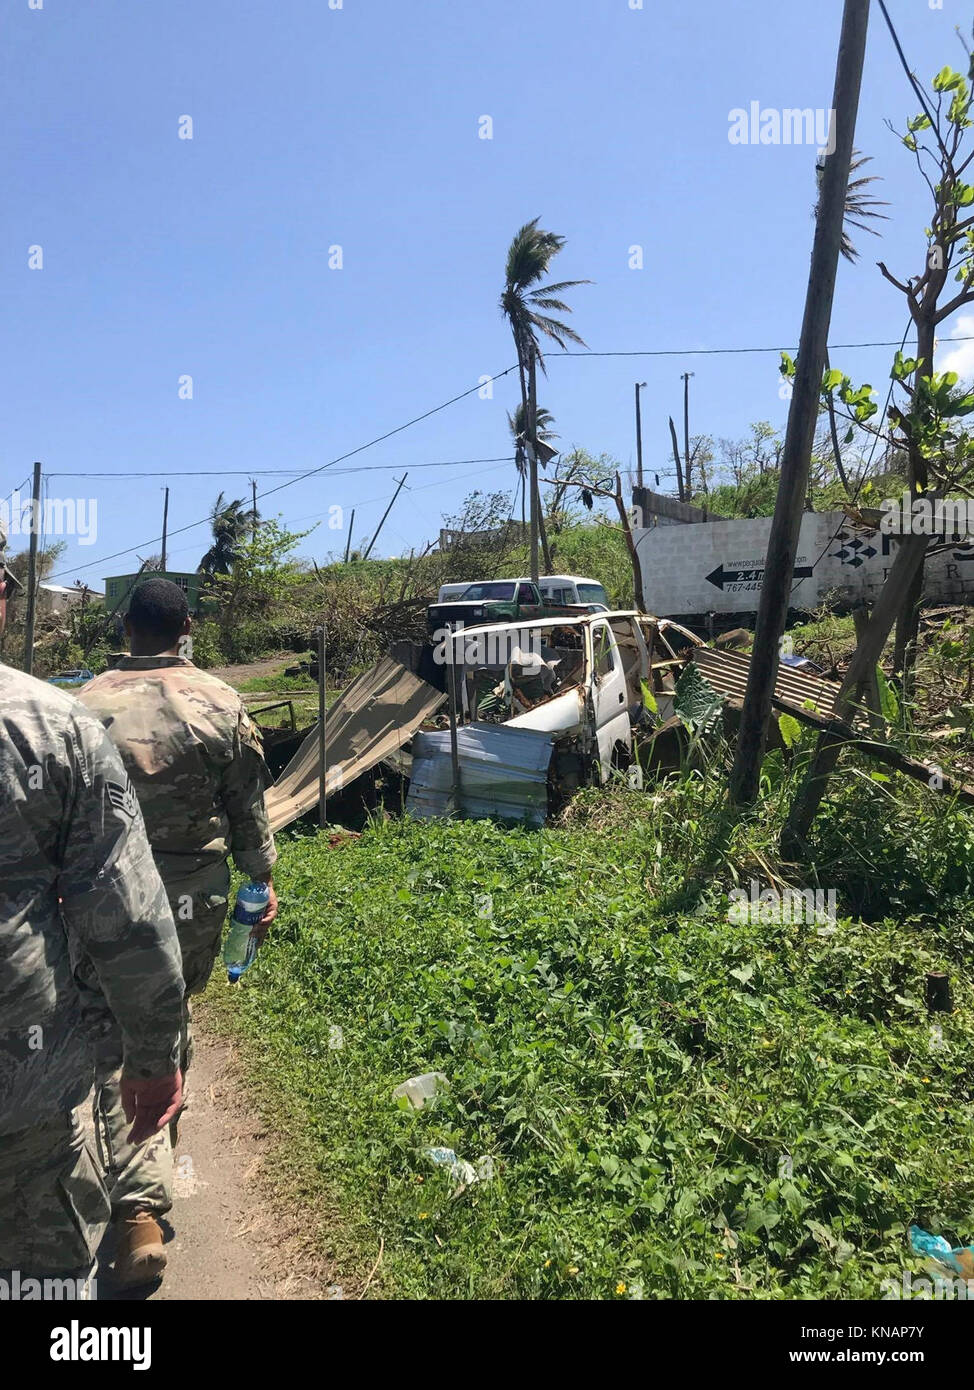 U.S. service members survey damage, Oct. 9, 2017 on the Caribbean island of Dominica. The island was devastated - Stock Image